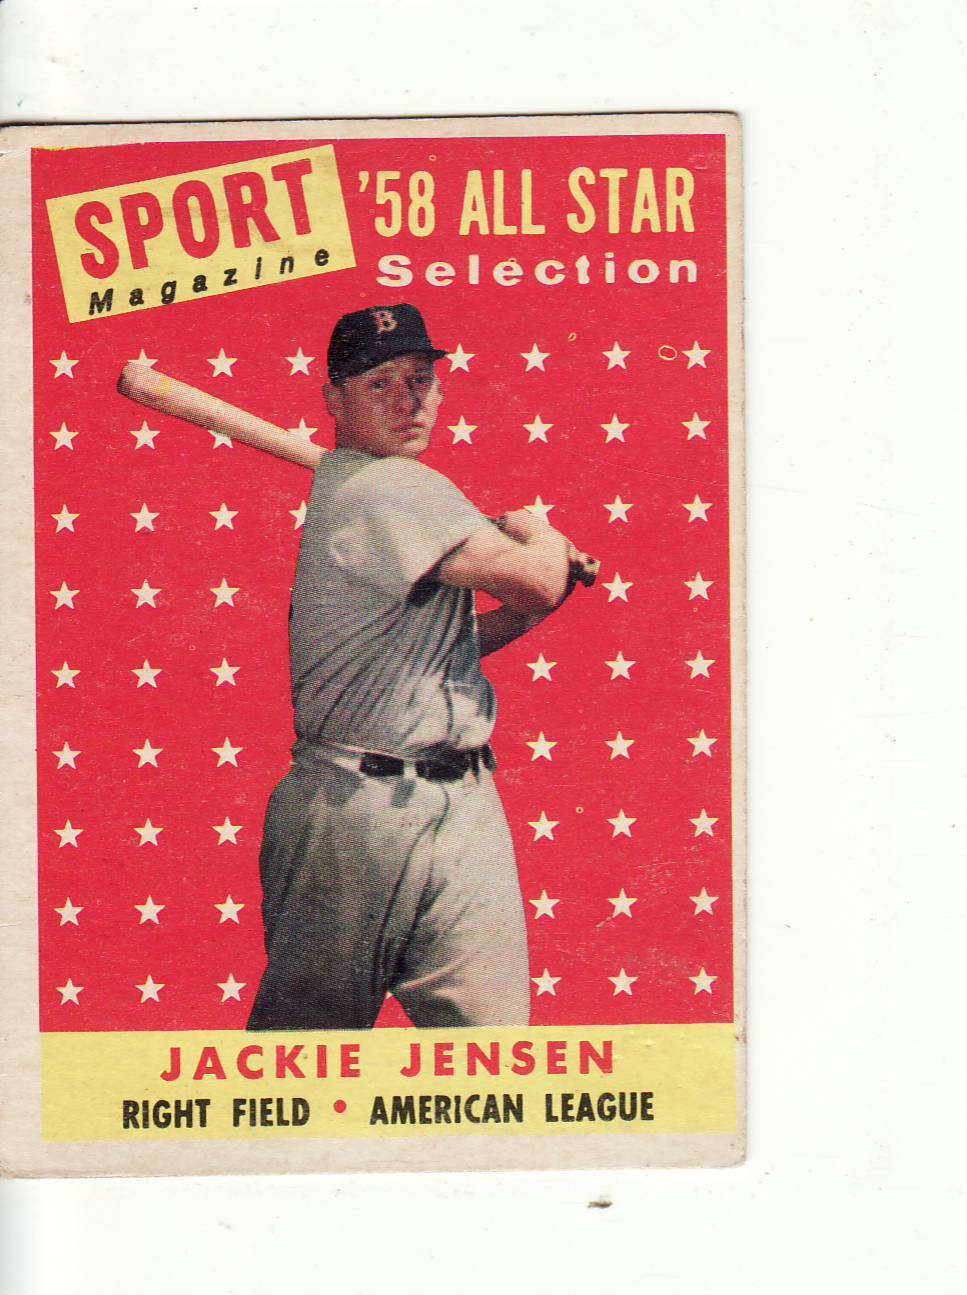 Primary image for  1958 TOPPS BASEBALL CARD#489 JACKIE JENSEN VGEX++ NO CREASES RED SOX STAR